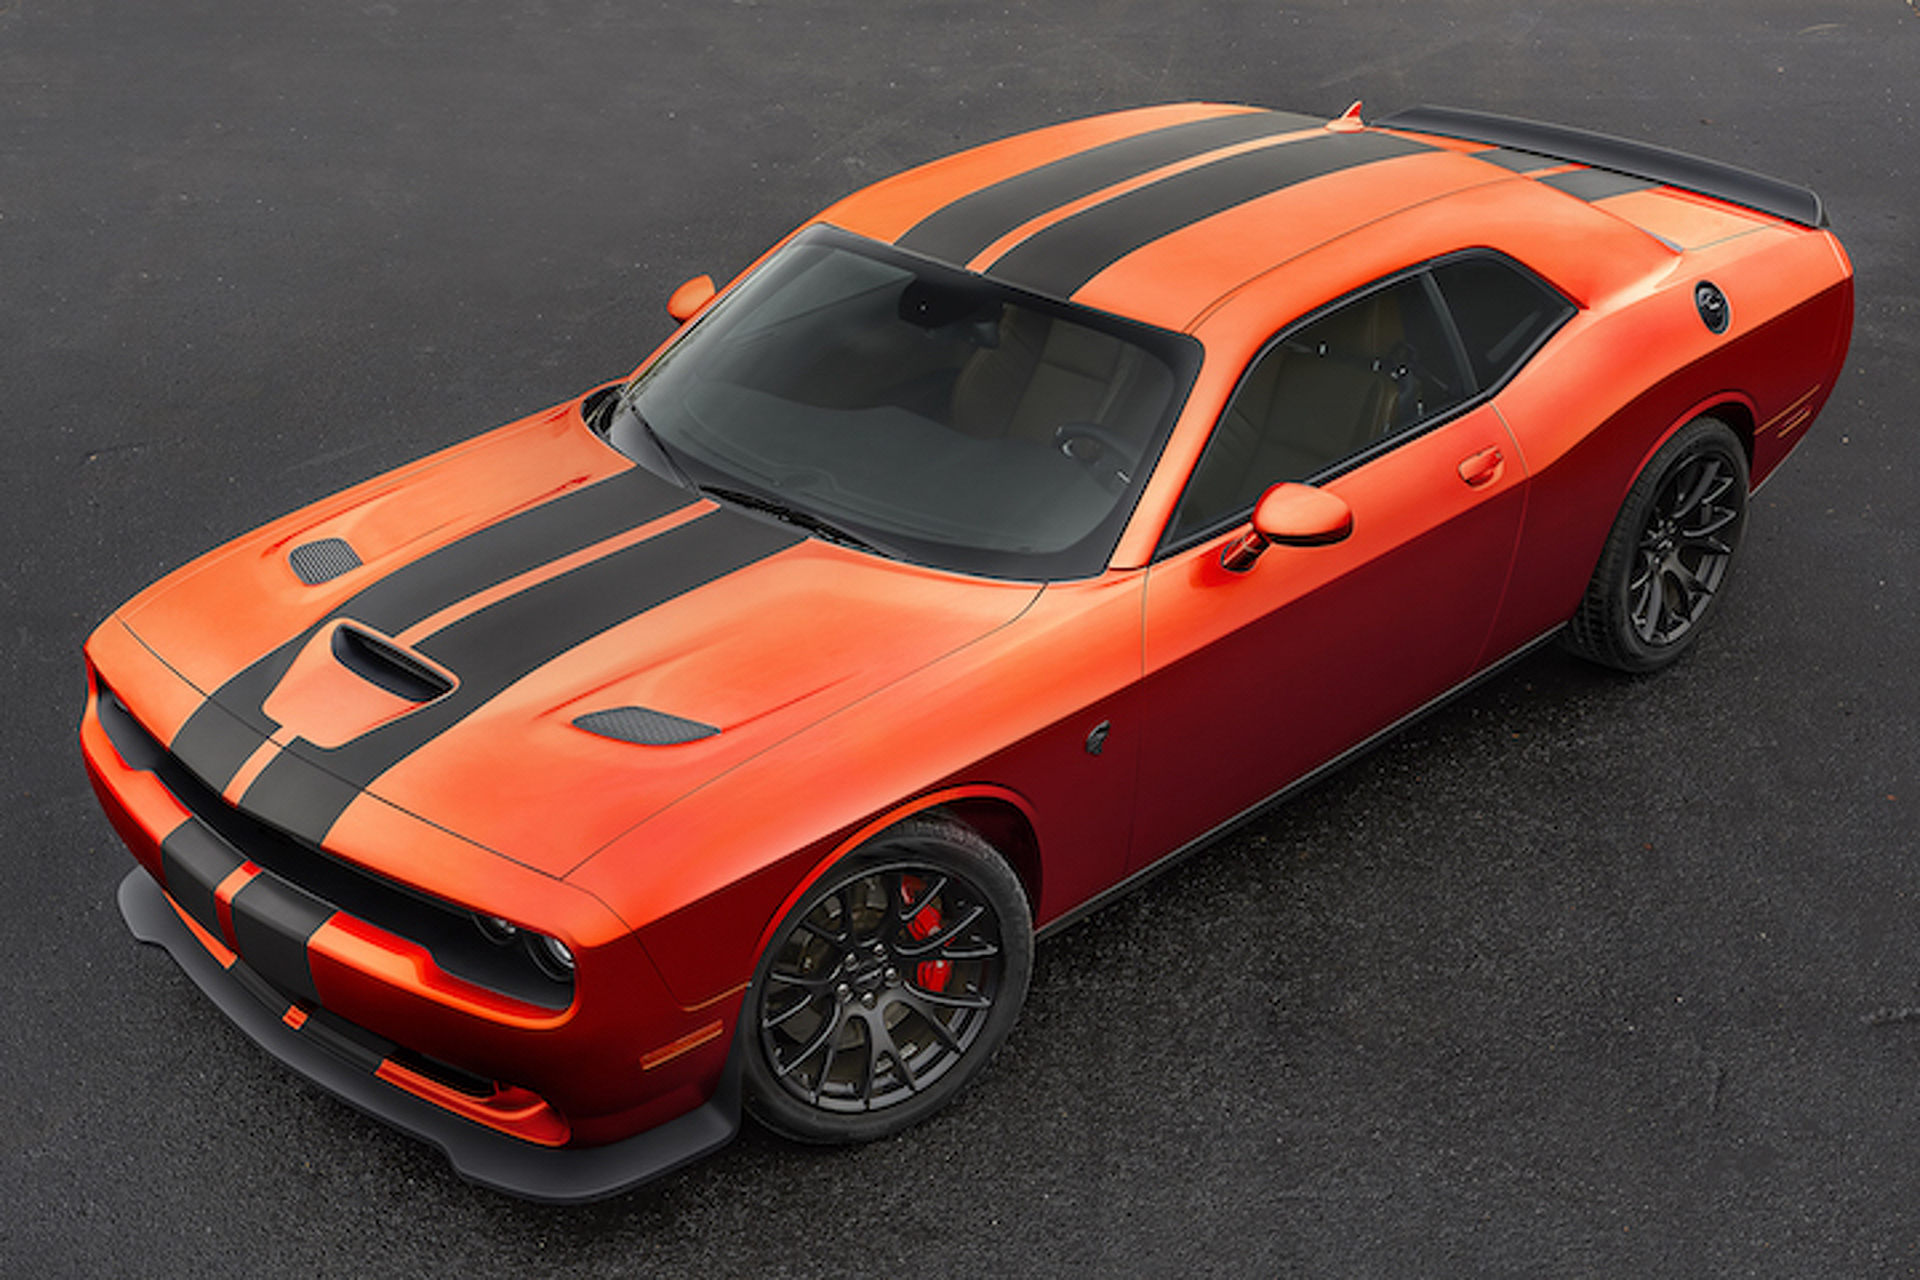 Orange You Glad You Can Buy a Dodge Challenger cat in 'Go Mango'?